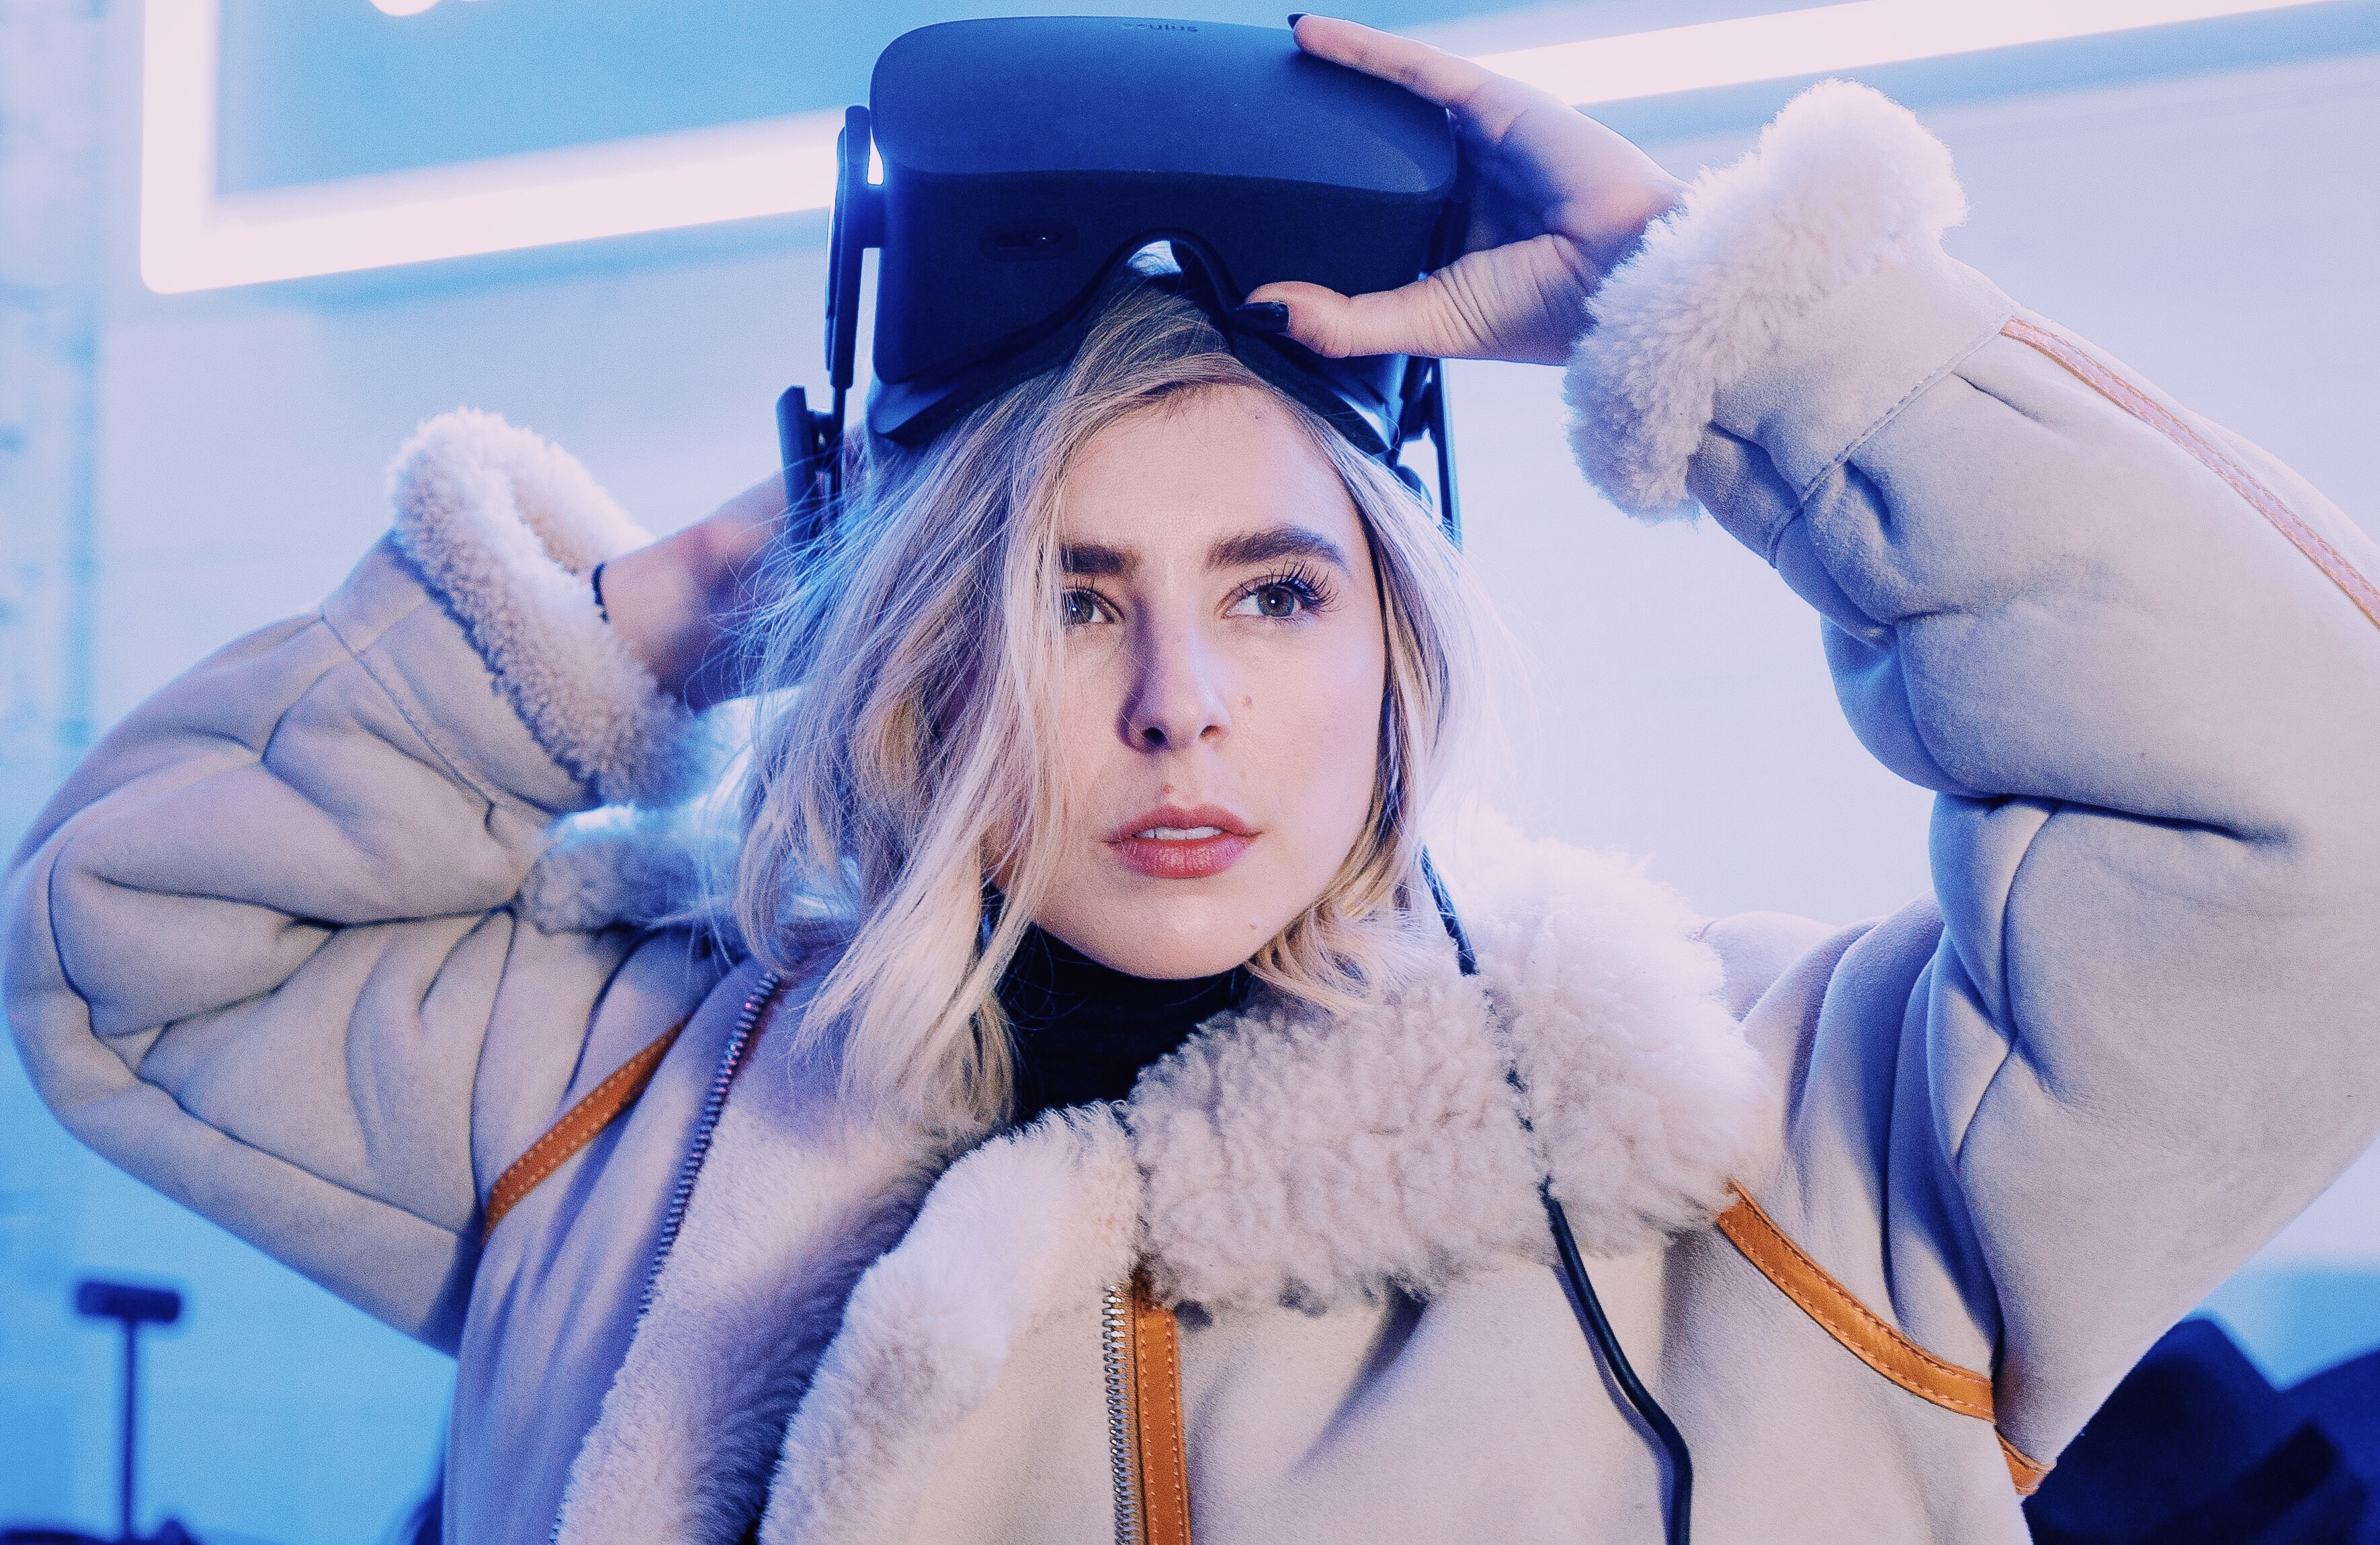 Director Eliza McNitt, who proves that VR always looks cooler with a puffy jacket.